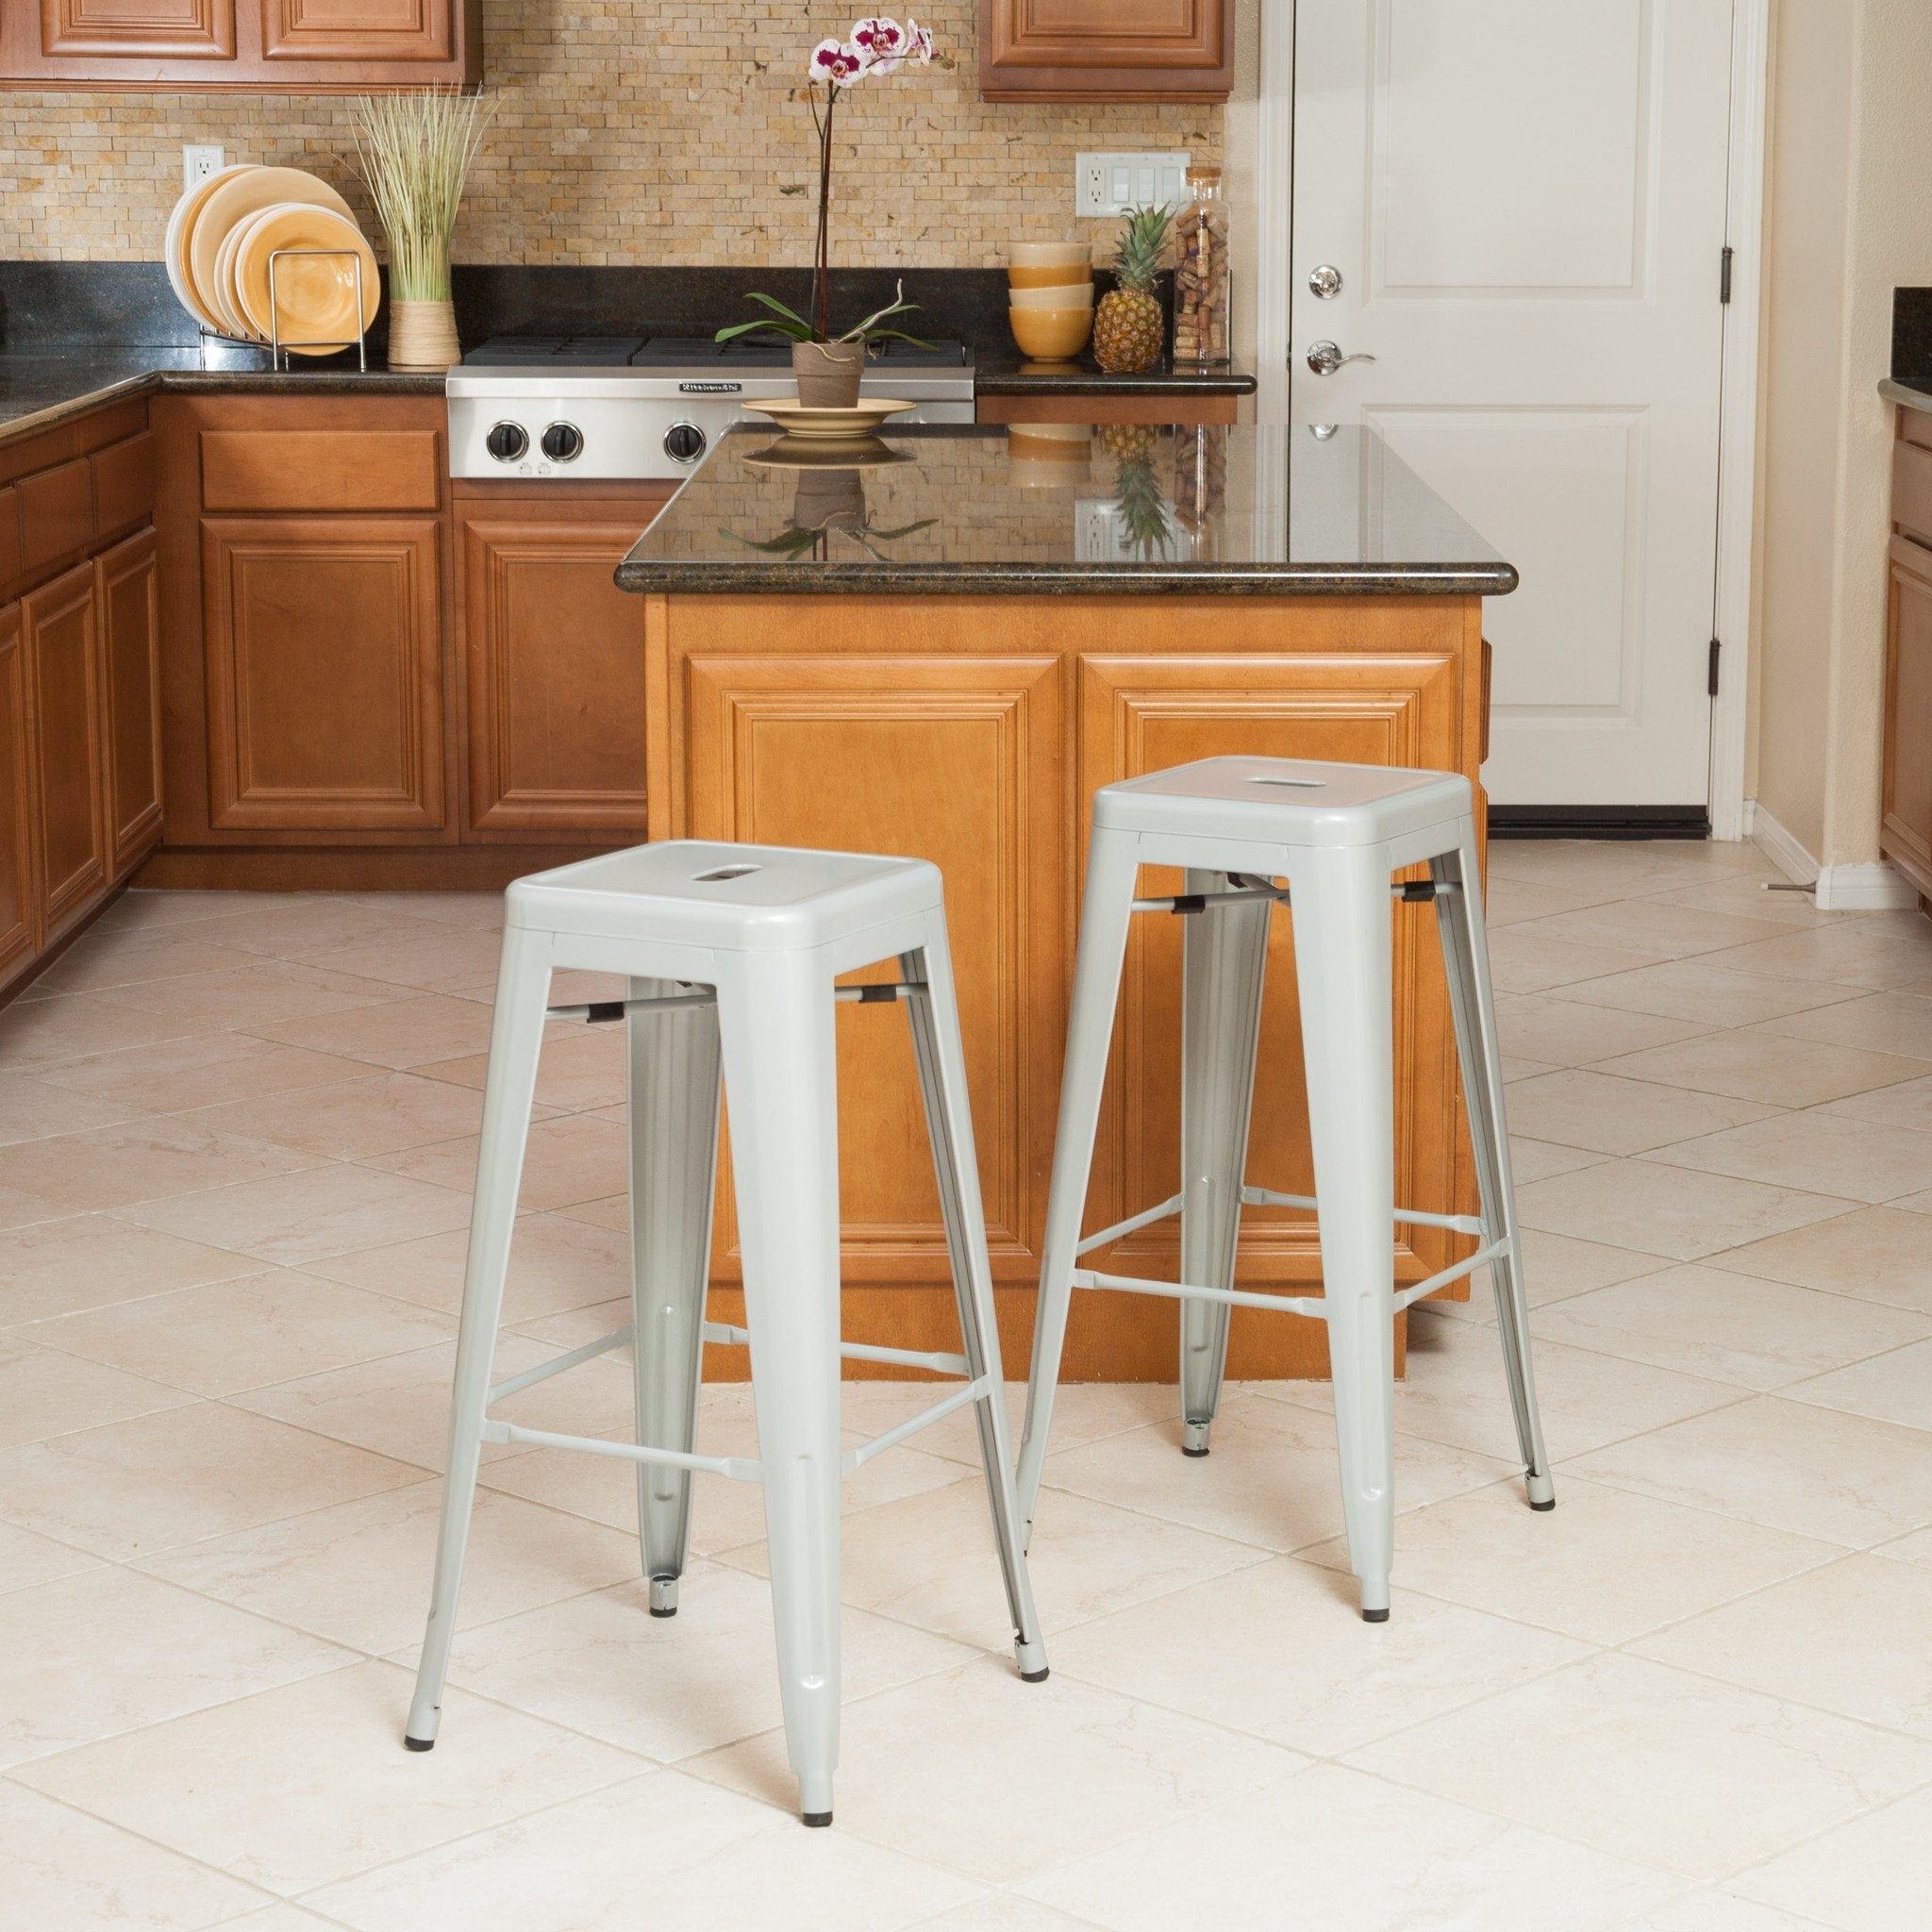 Munich Silver Steel Bar Stools (Set of 2)